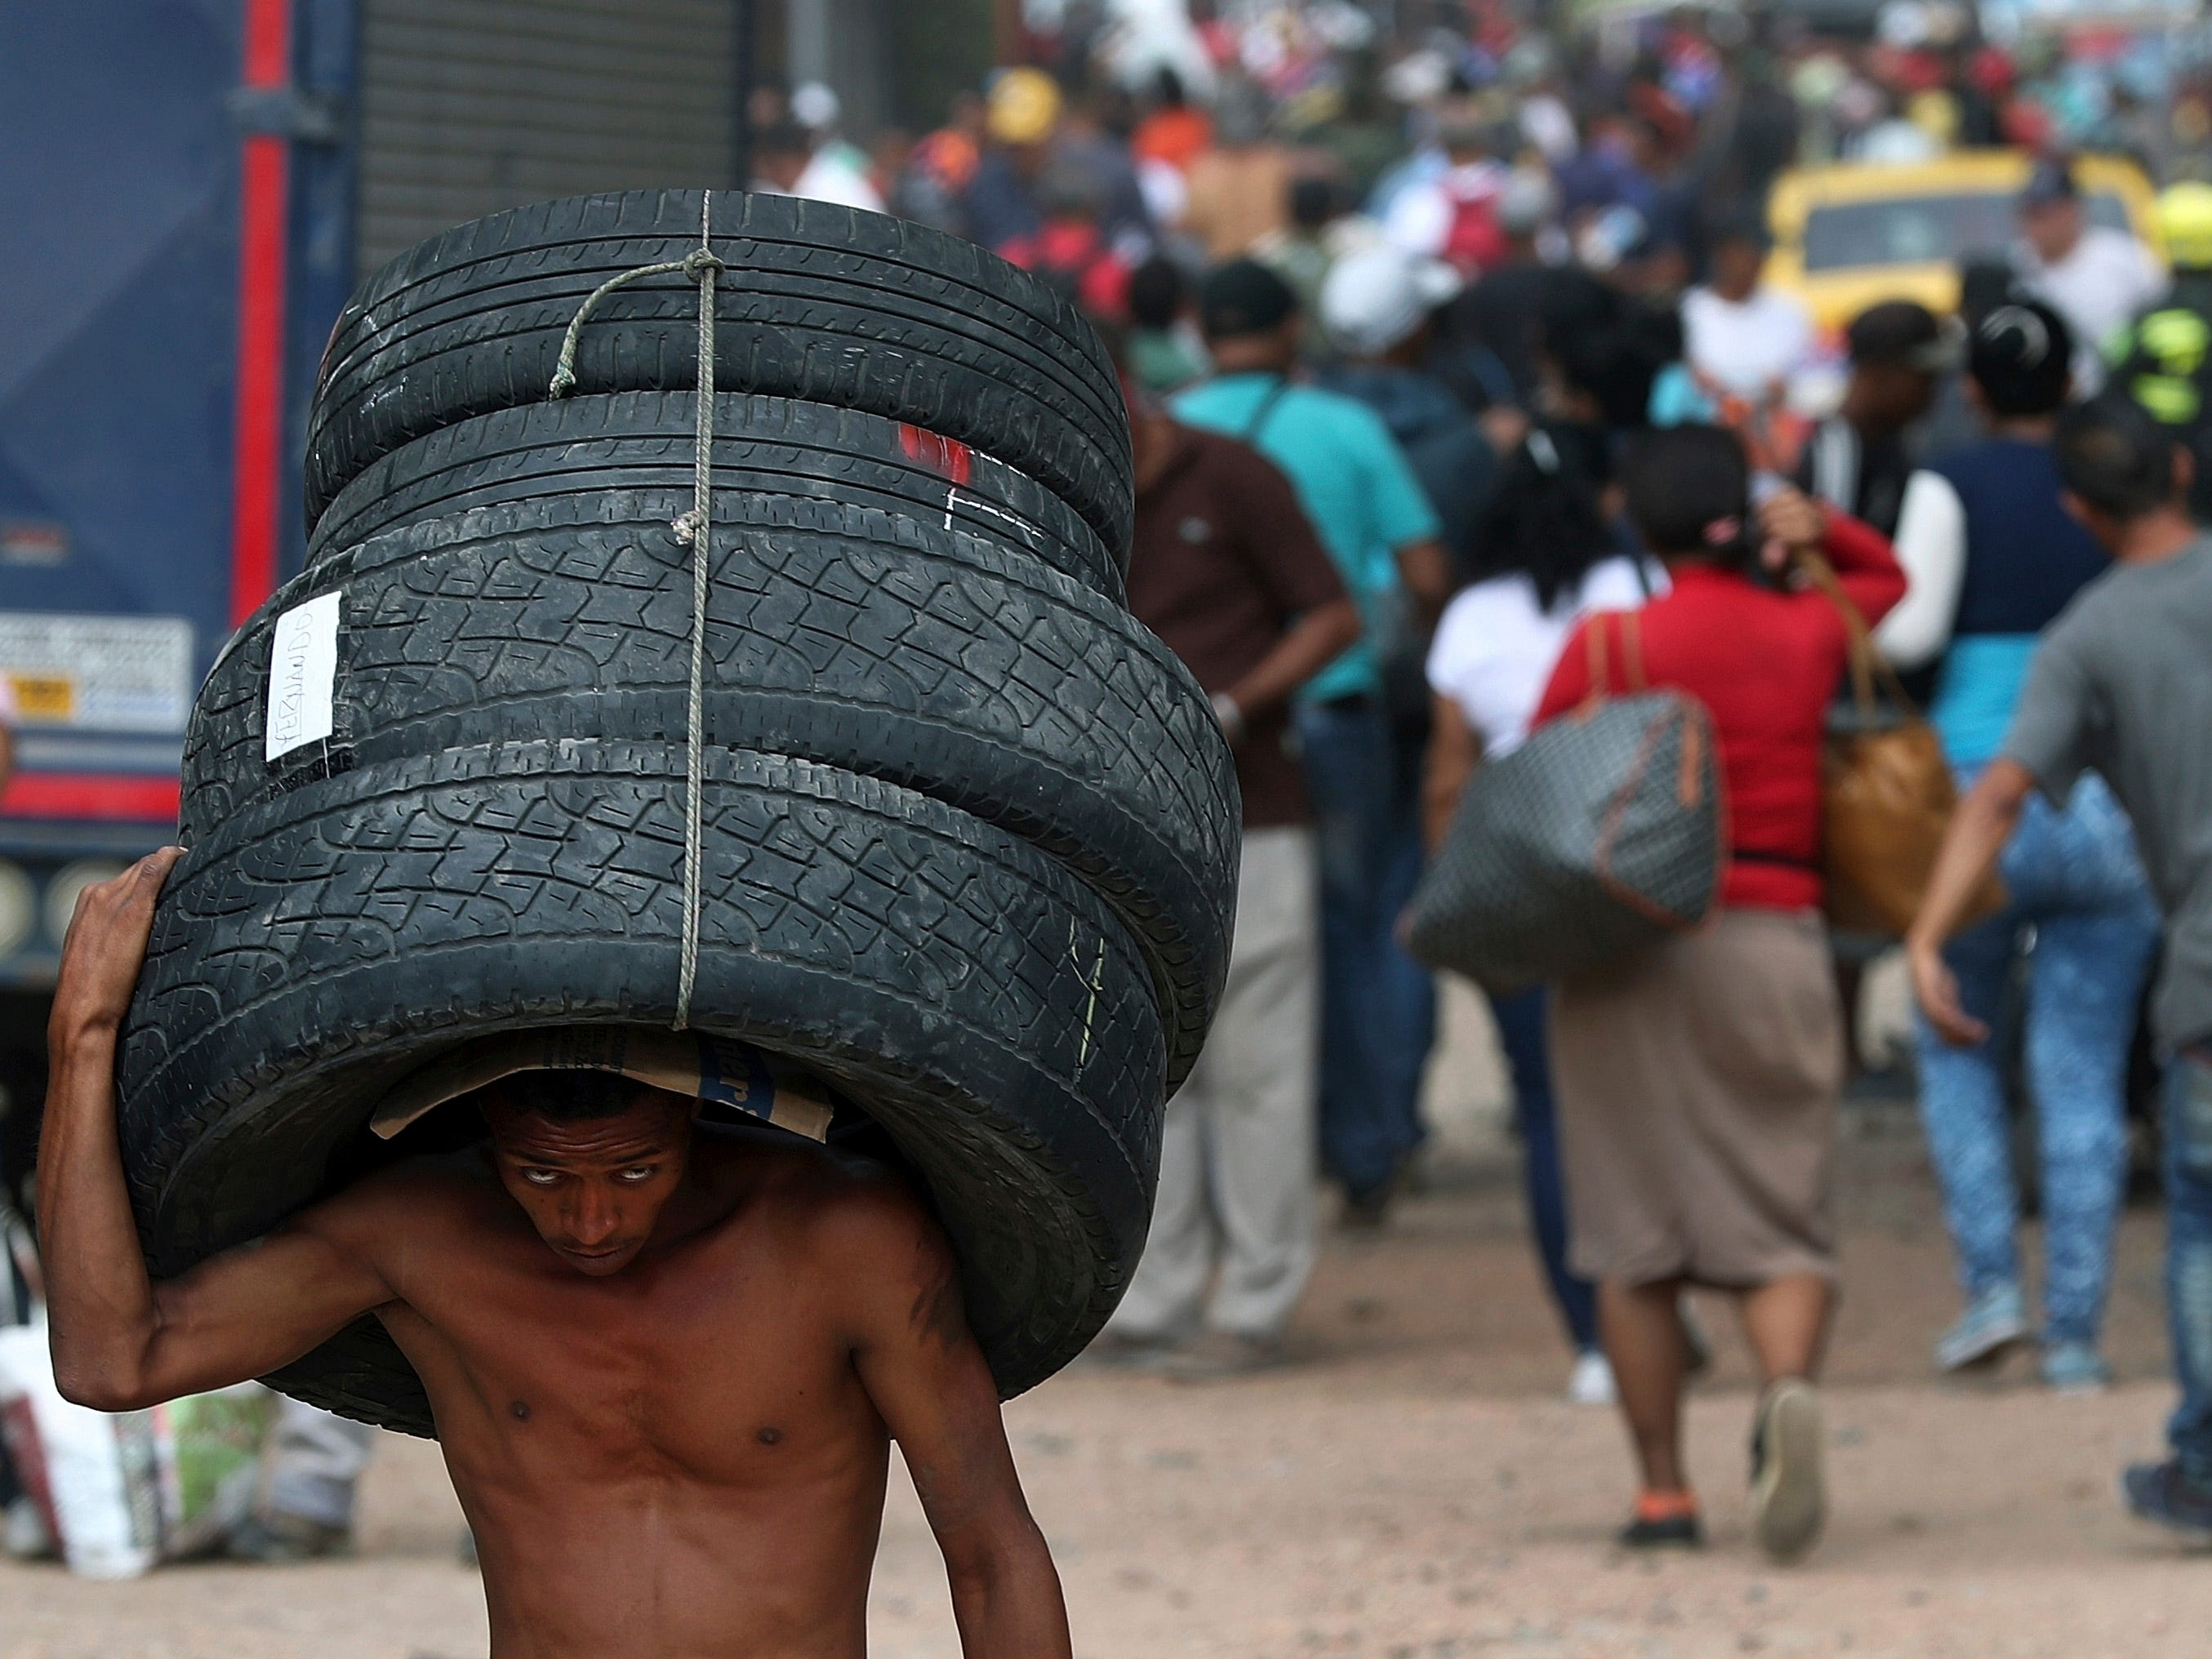 A man carries a set of used tires into Venezuela from Colombia through a blind spot on the border near the Simon Bolivar International Bridge in La Parada, Colombia, Thursday, Feb. 28, 2019.